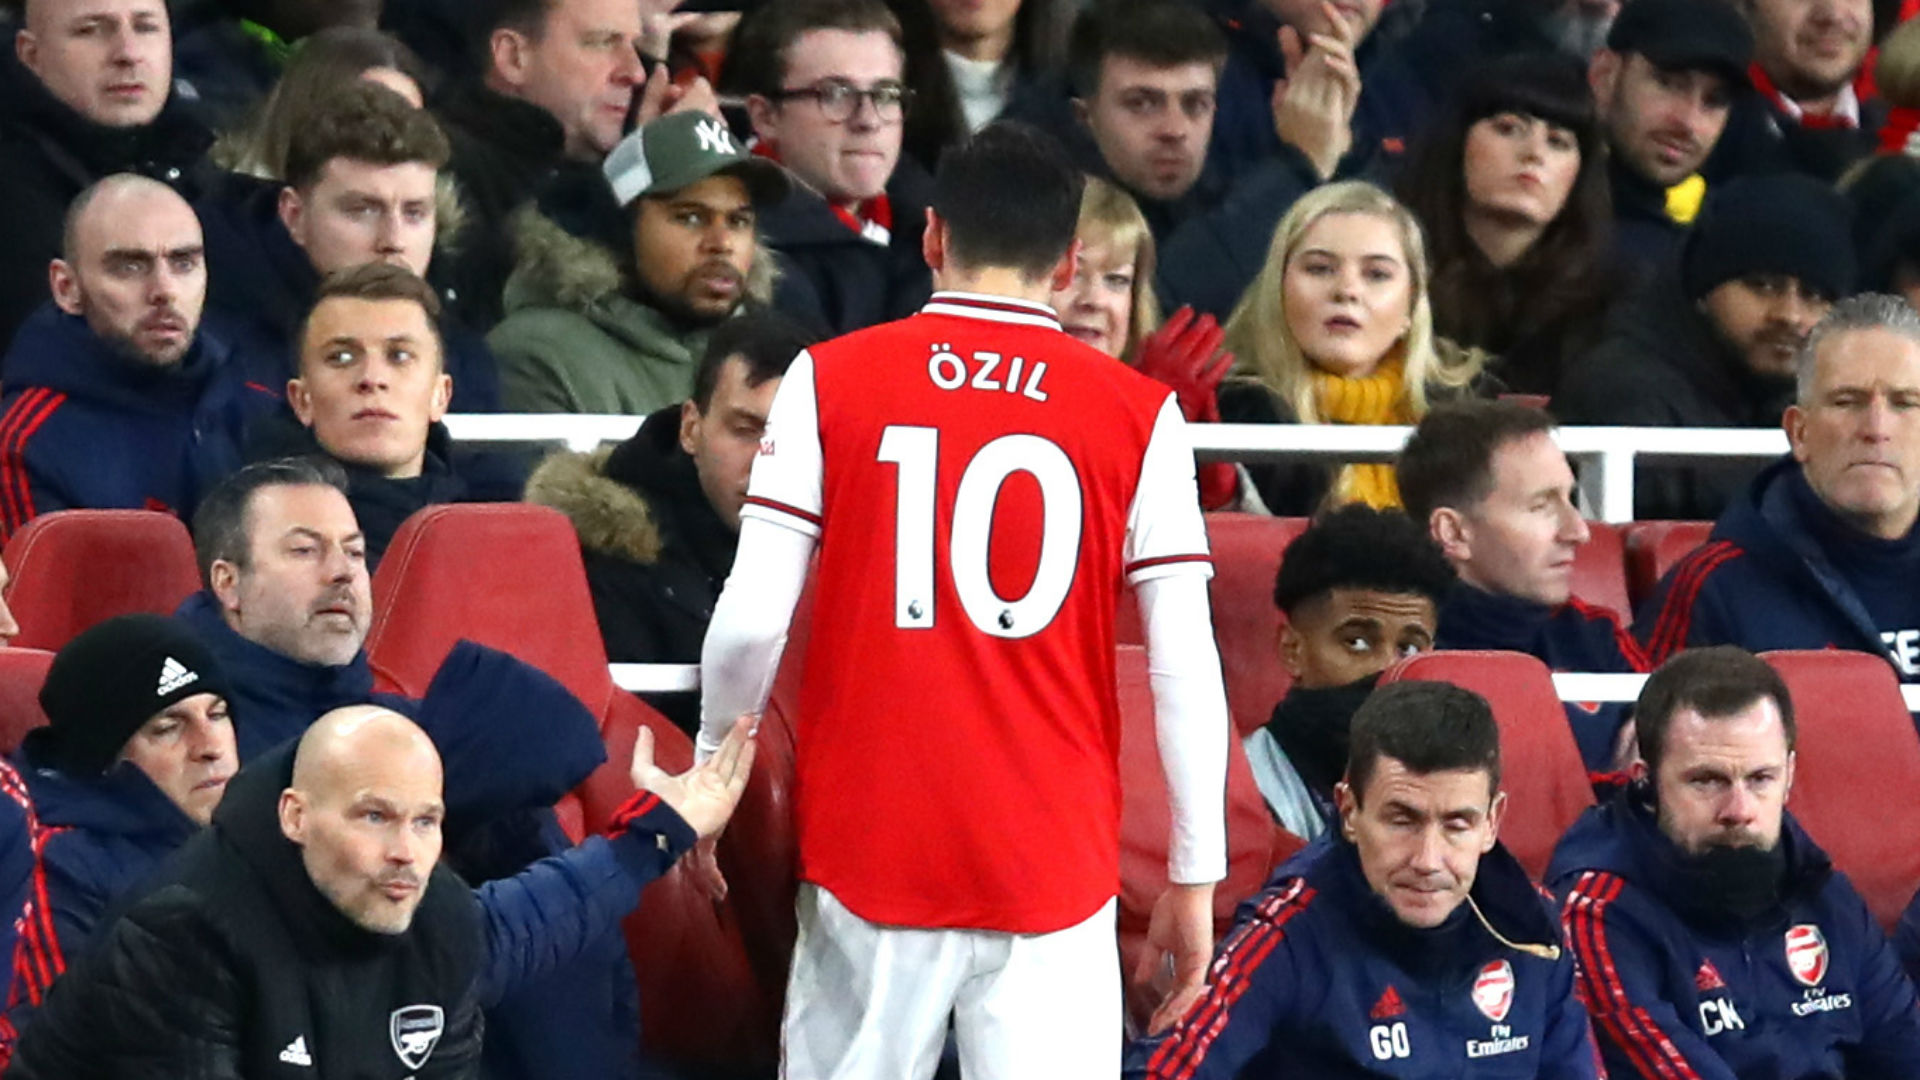 Ozil available for Arteta's first match in charge of Arsenal